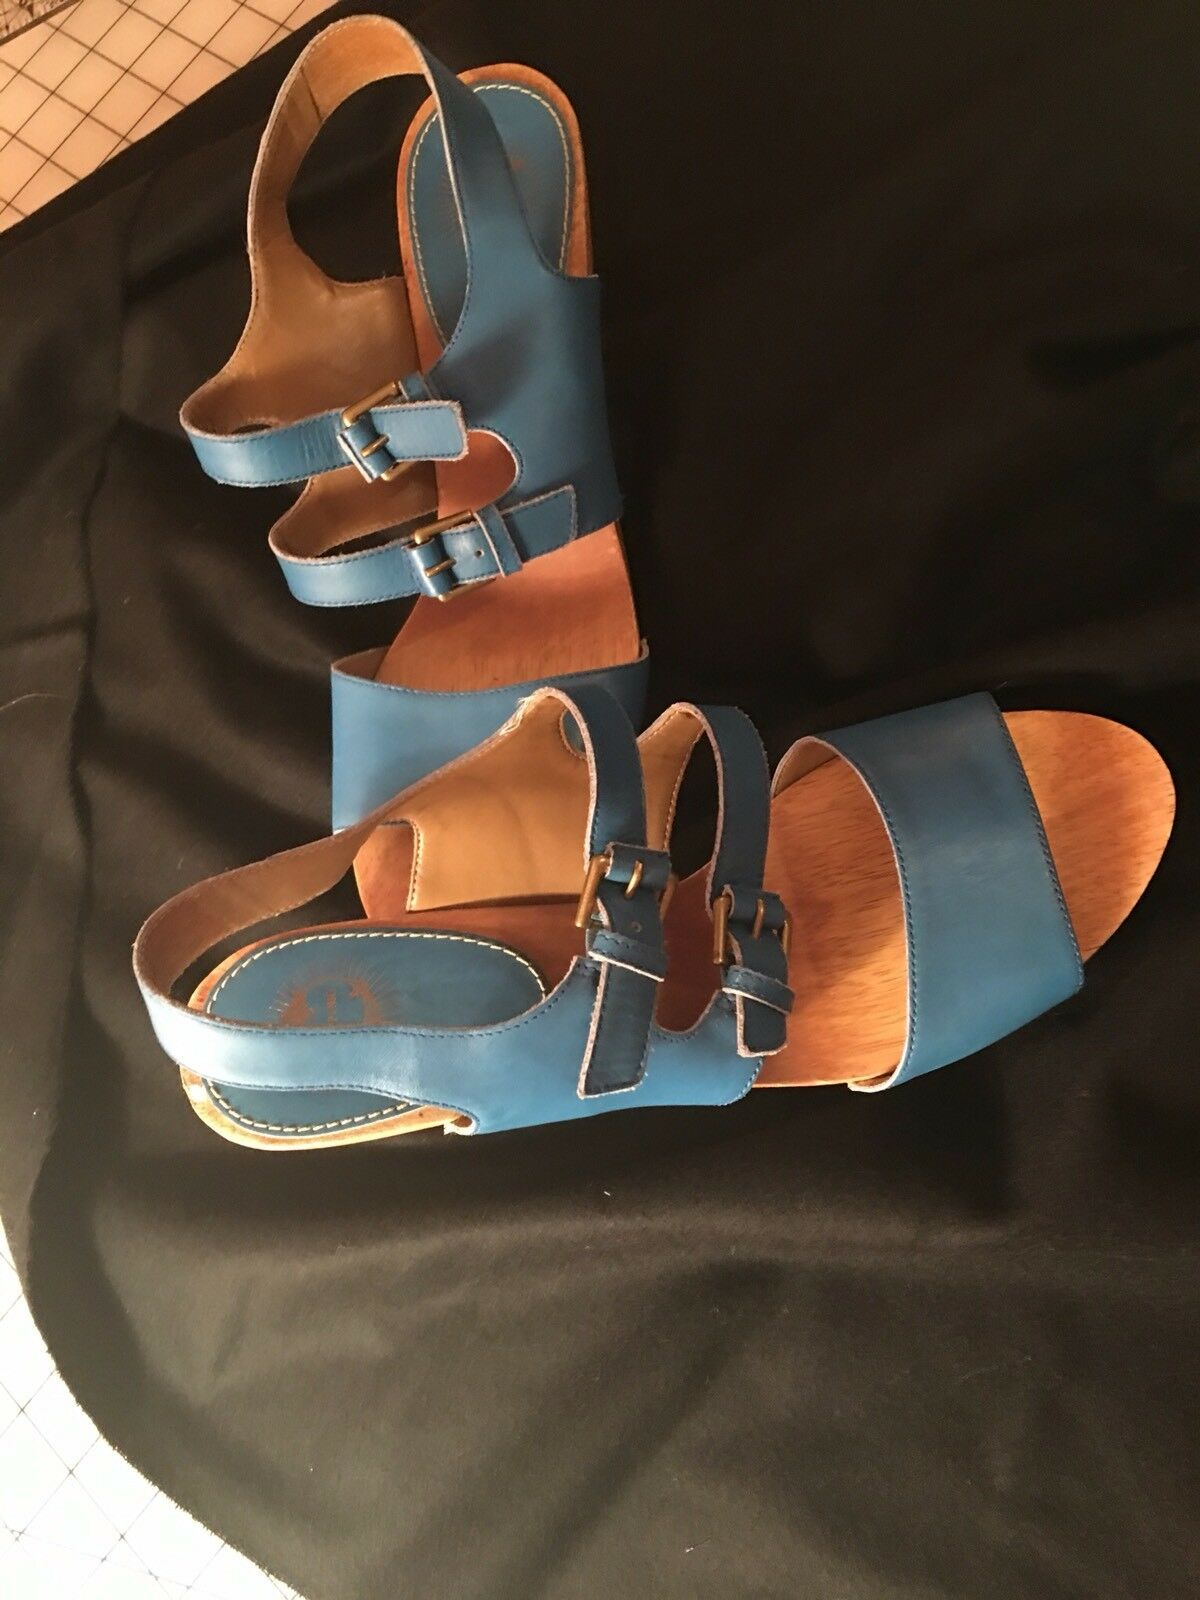 ANTHROPOLOGIE SVEABORG PICNIC CLOGS Blau LEATHER LUCKY PENNY Schuhe 10 B